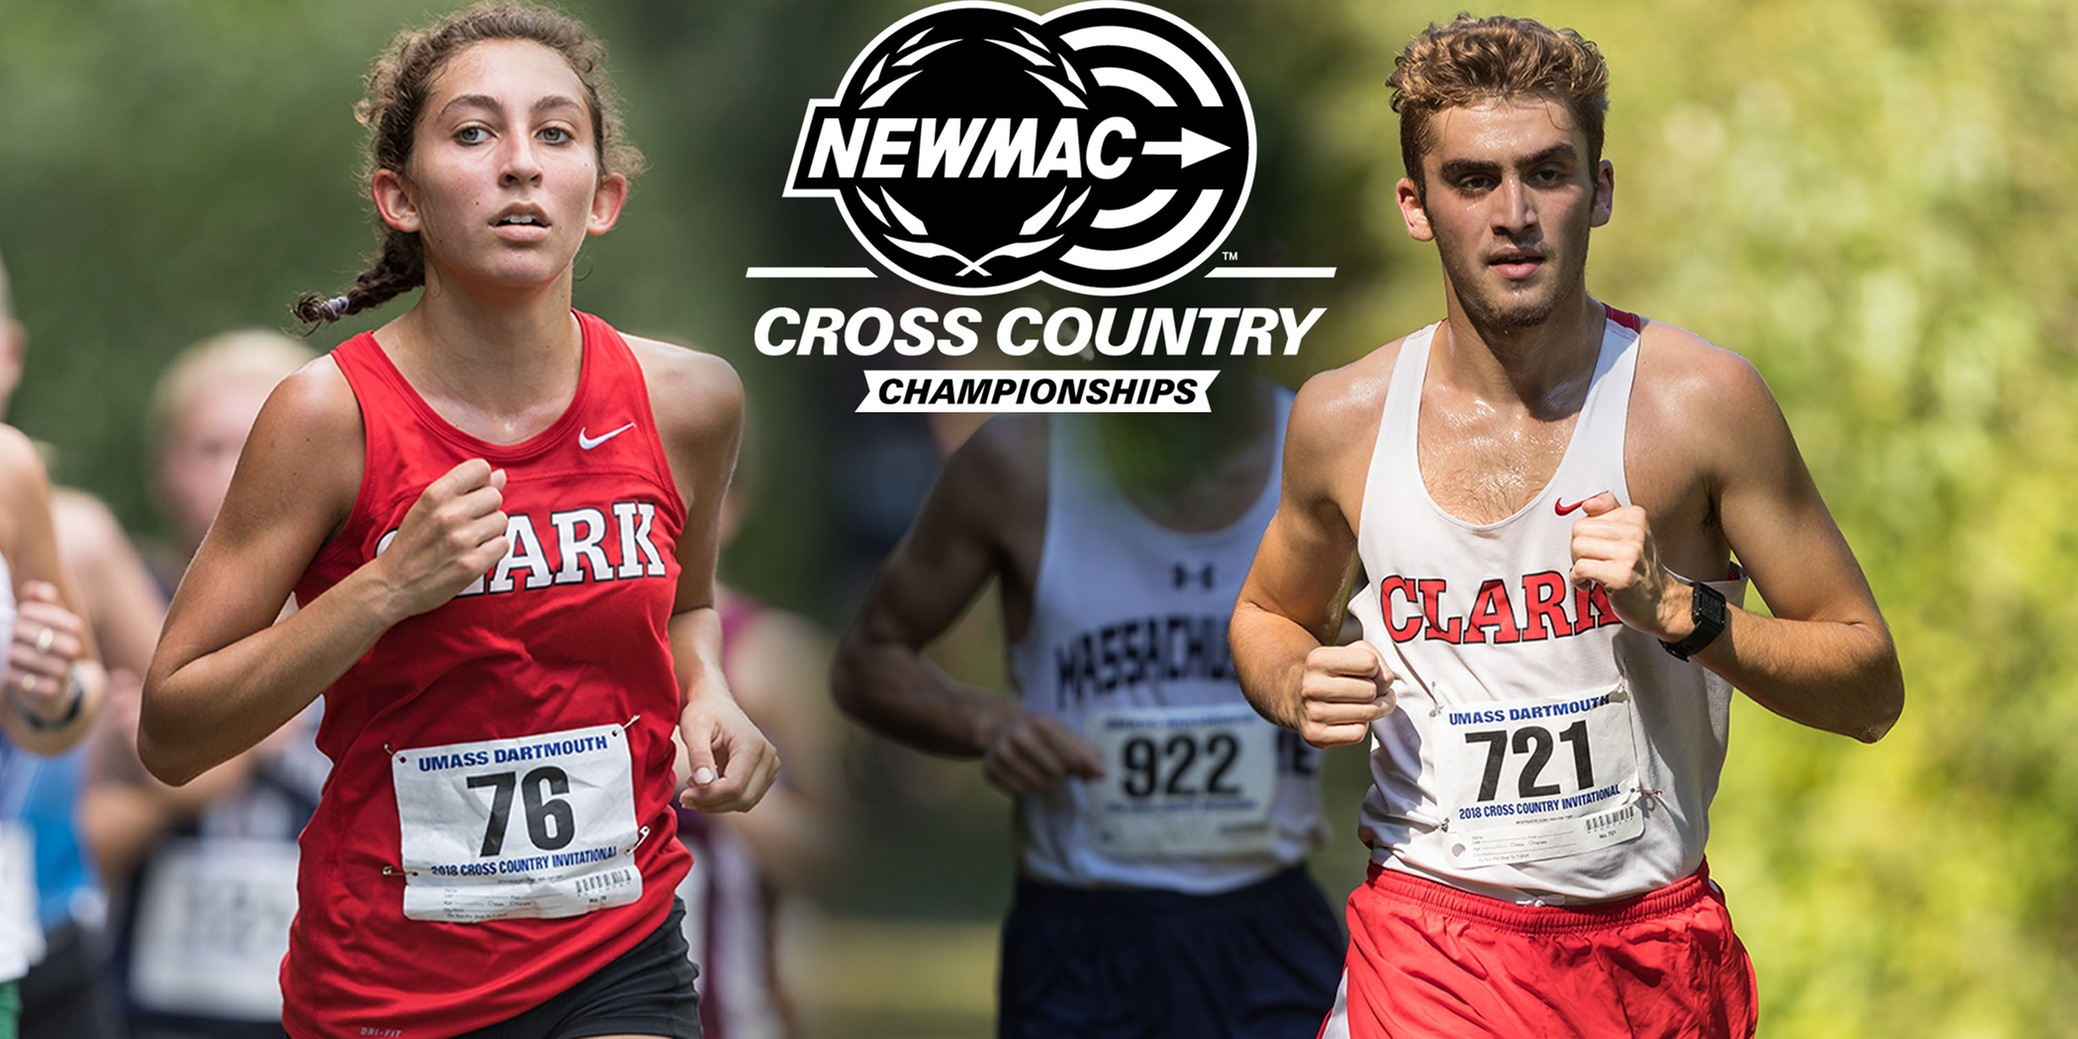 Cross Country NEWMAC Championship Preview